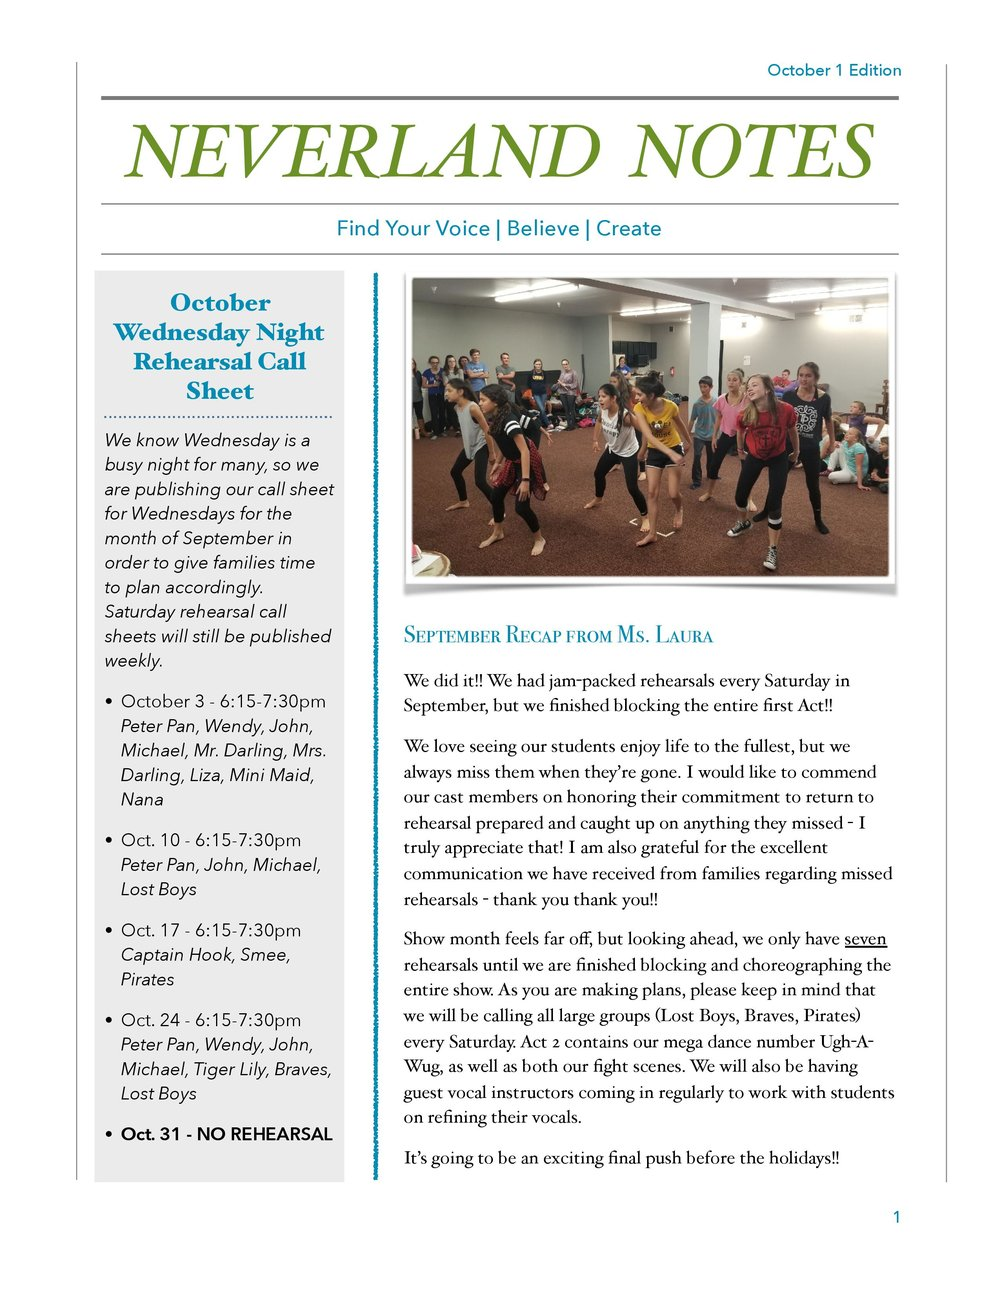 STC Newsletter copy 10_01-page-001.jpg